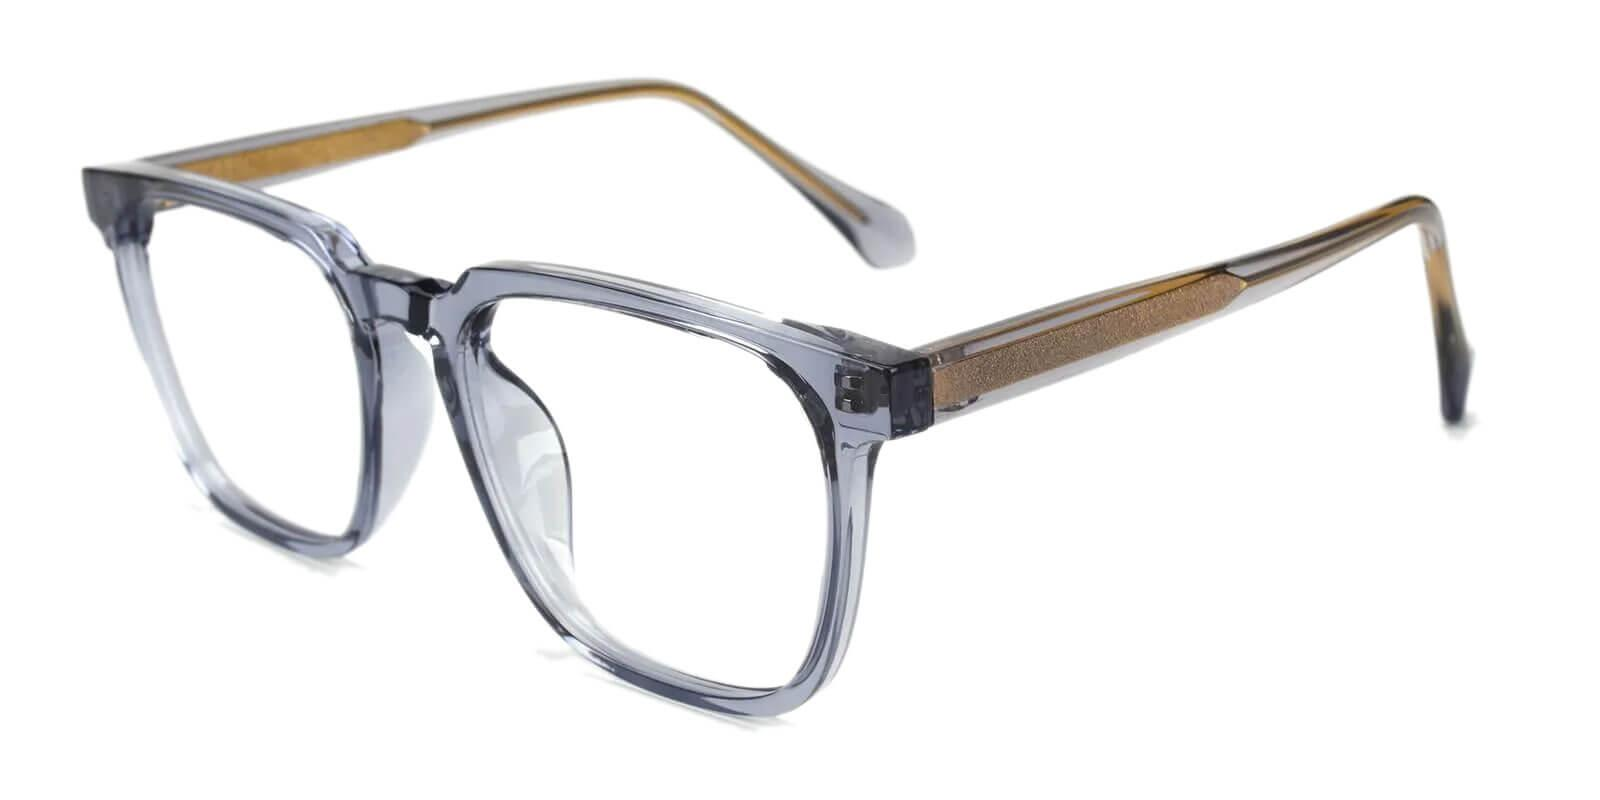 Oriana Gray Acetate Eyeglasses , SpringHinges , UniversalBridgeFit Frames from ABBE Glasses